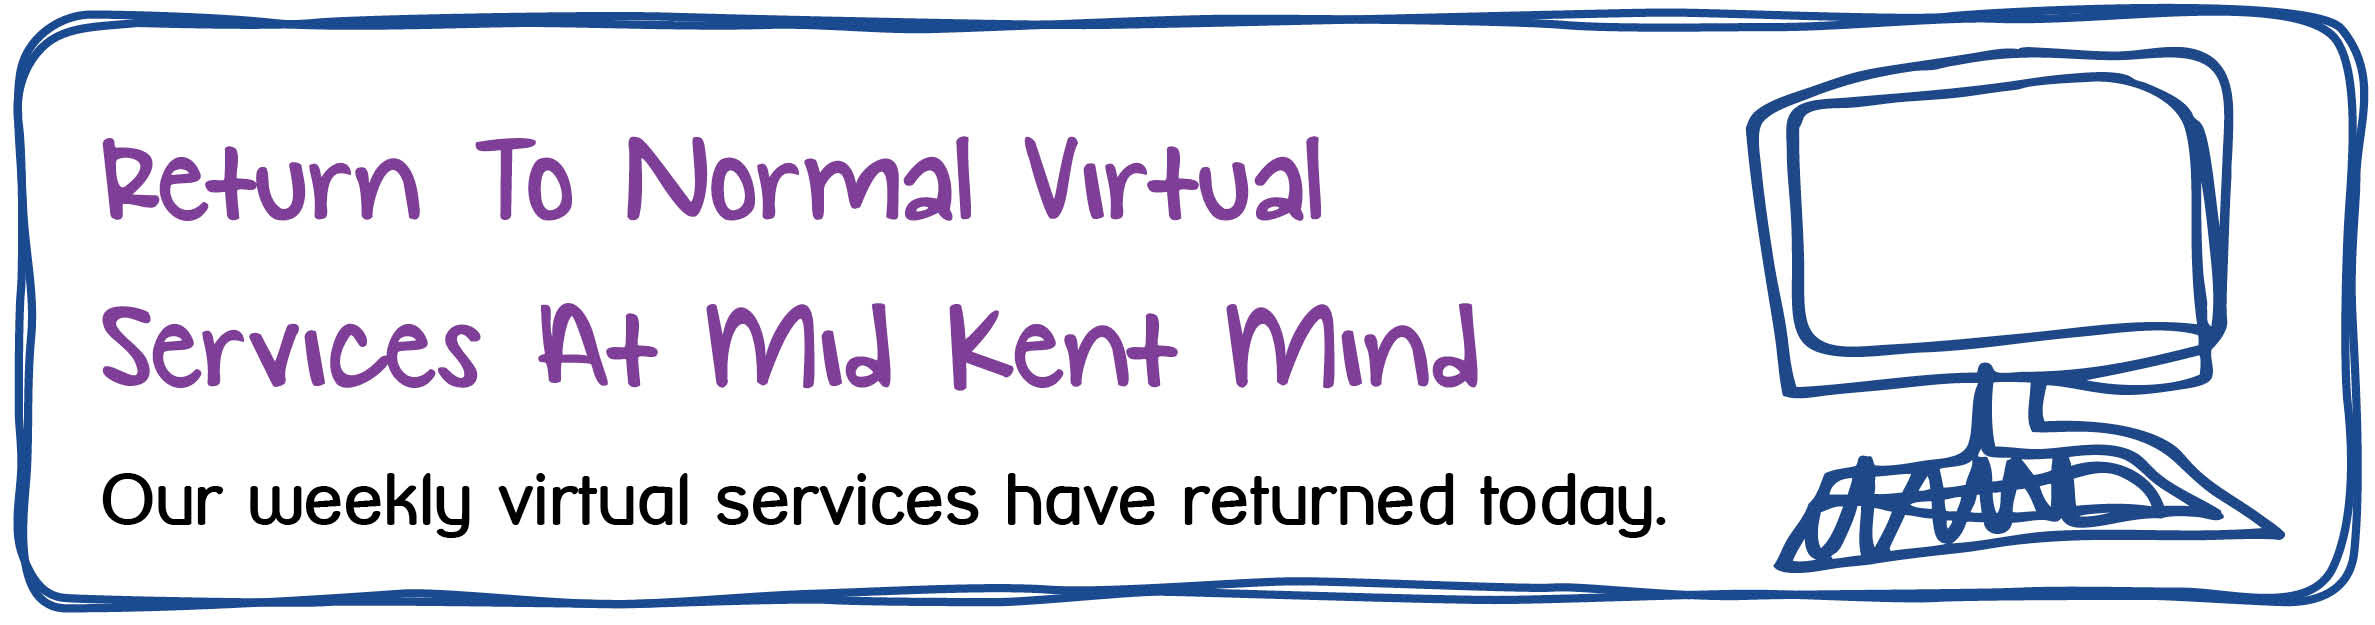 Return to Normal Virtual Services At Mid Kent Mind. Our weekly virtual services have returned today.